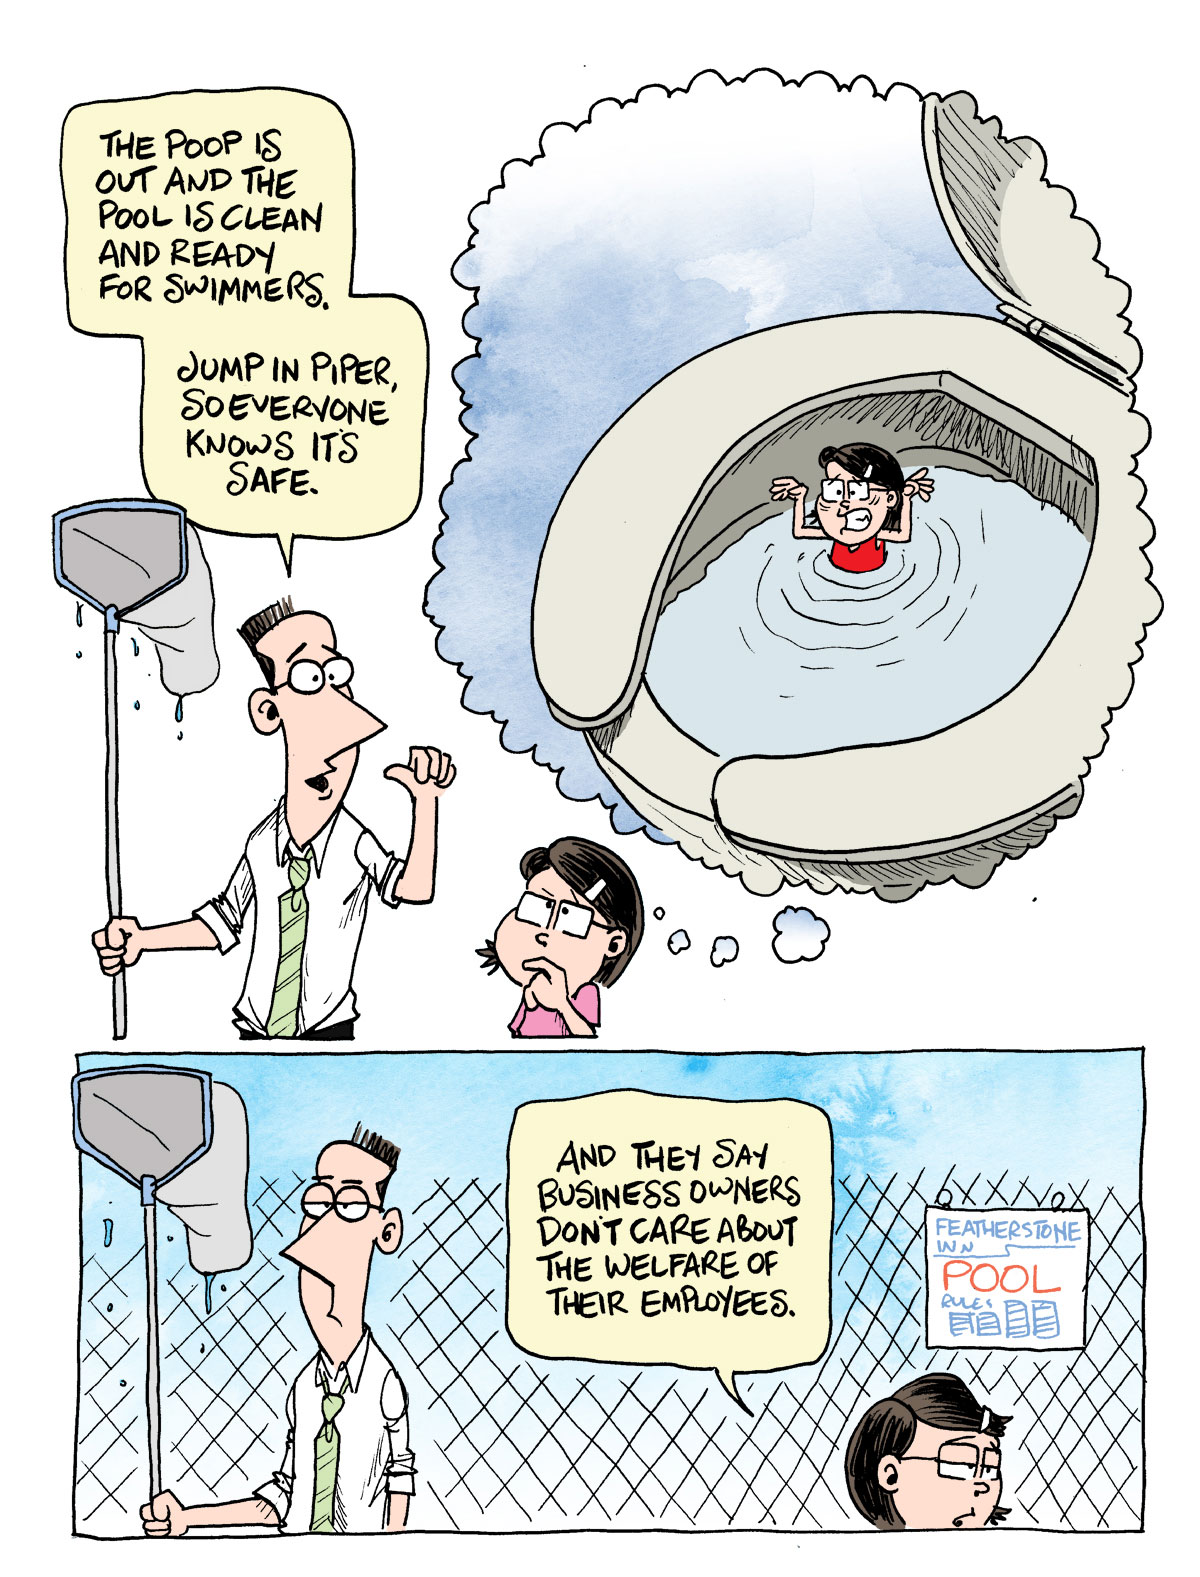 20150814-Clean-pool-FINAL-for-web